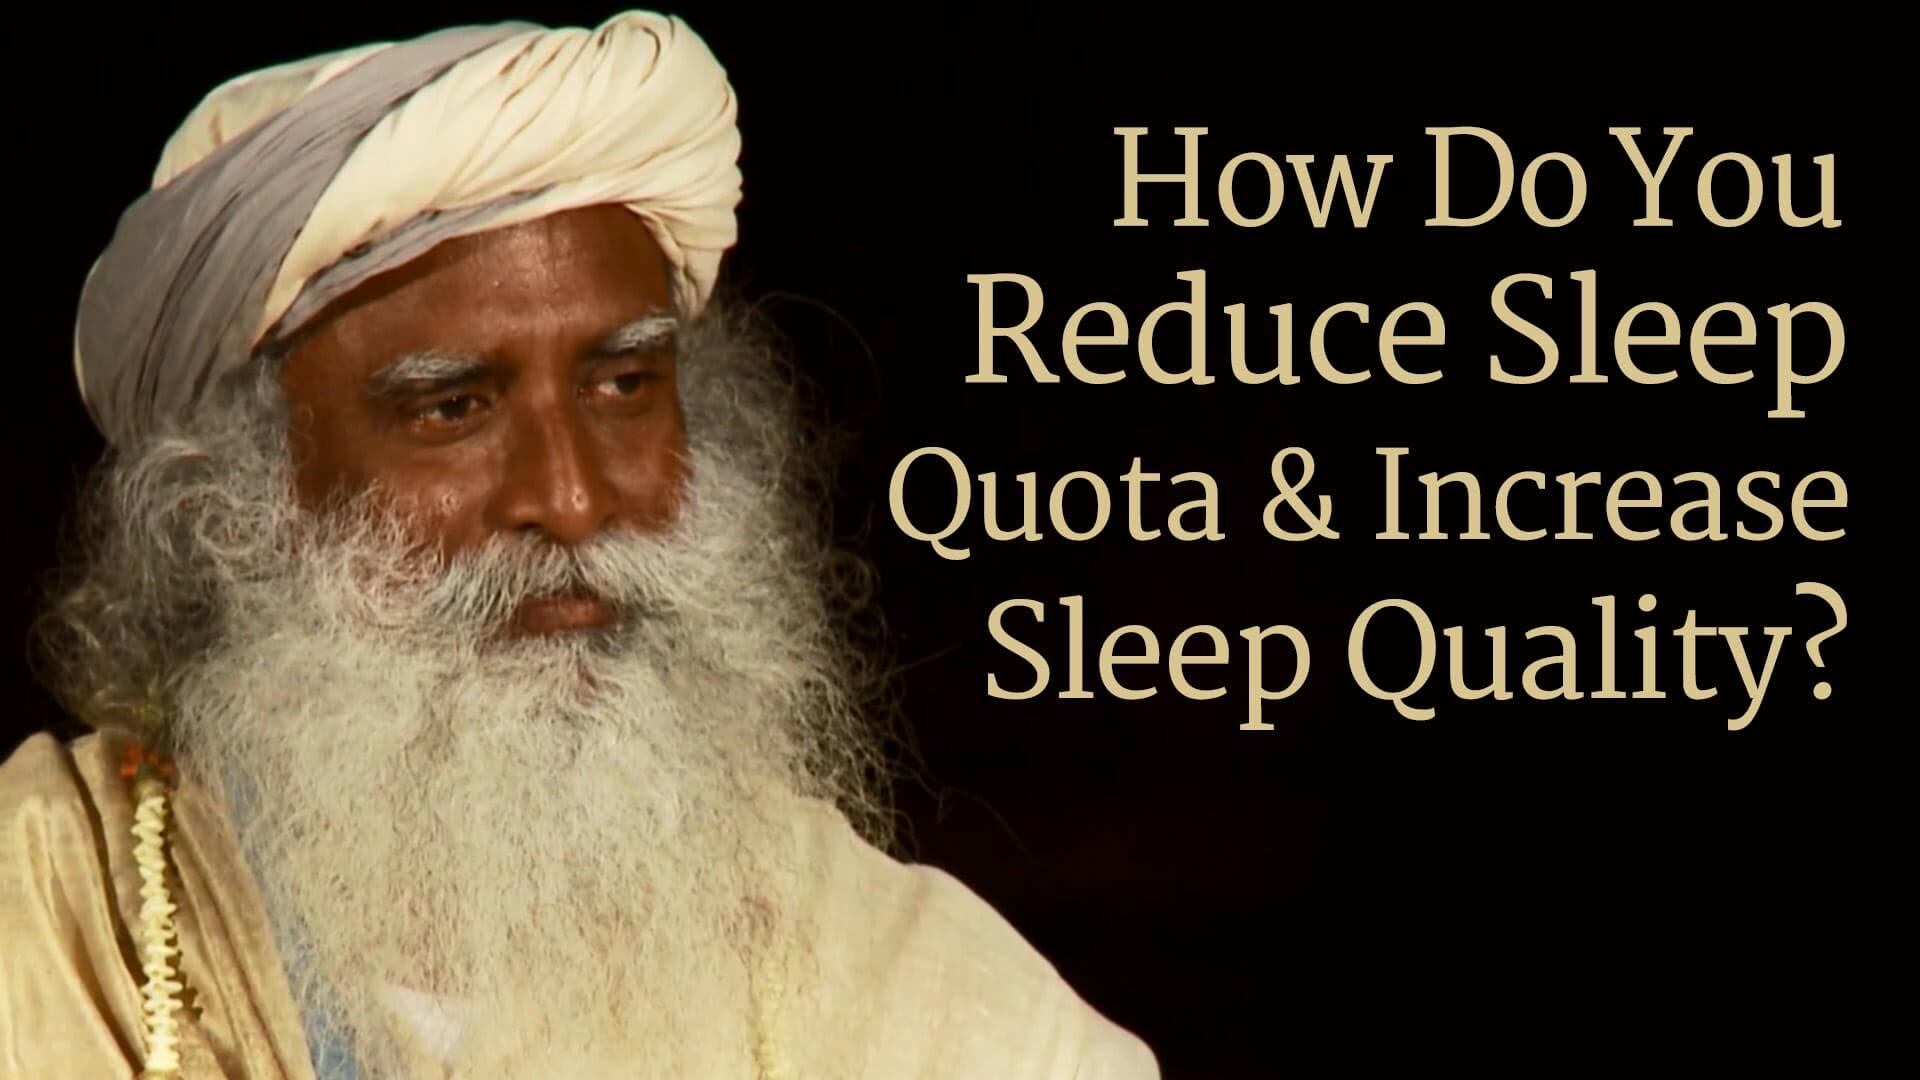 How to reduce sleep